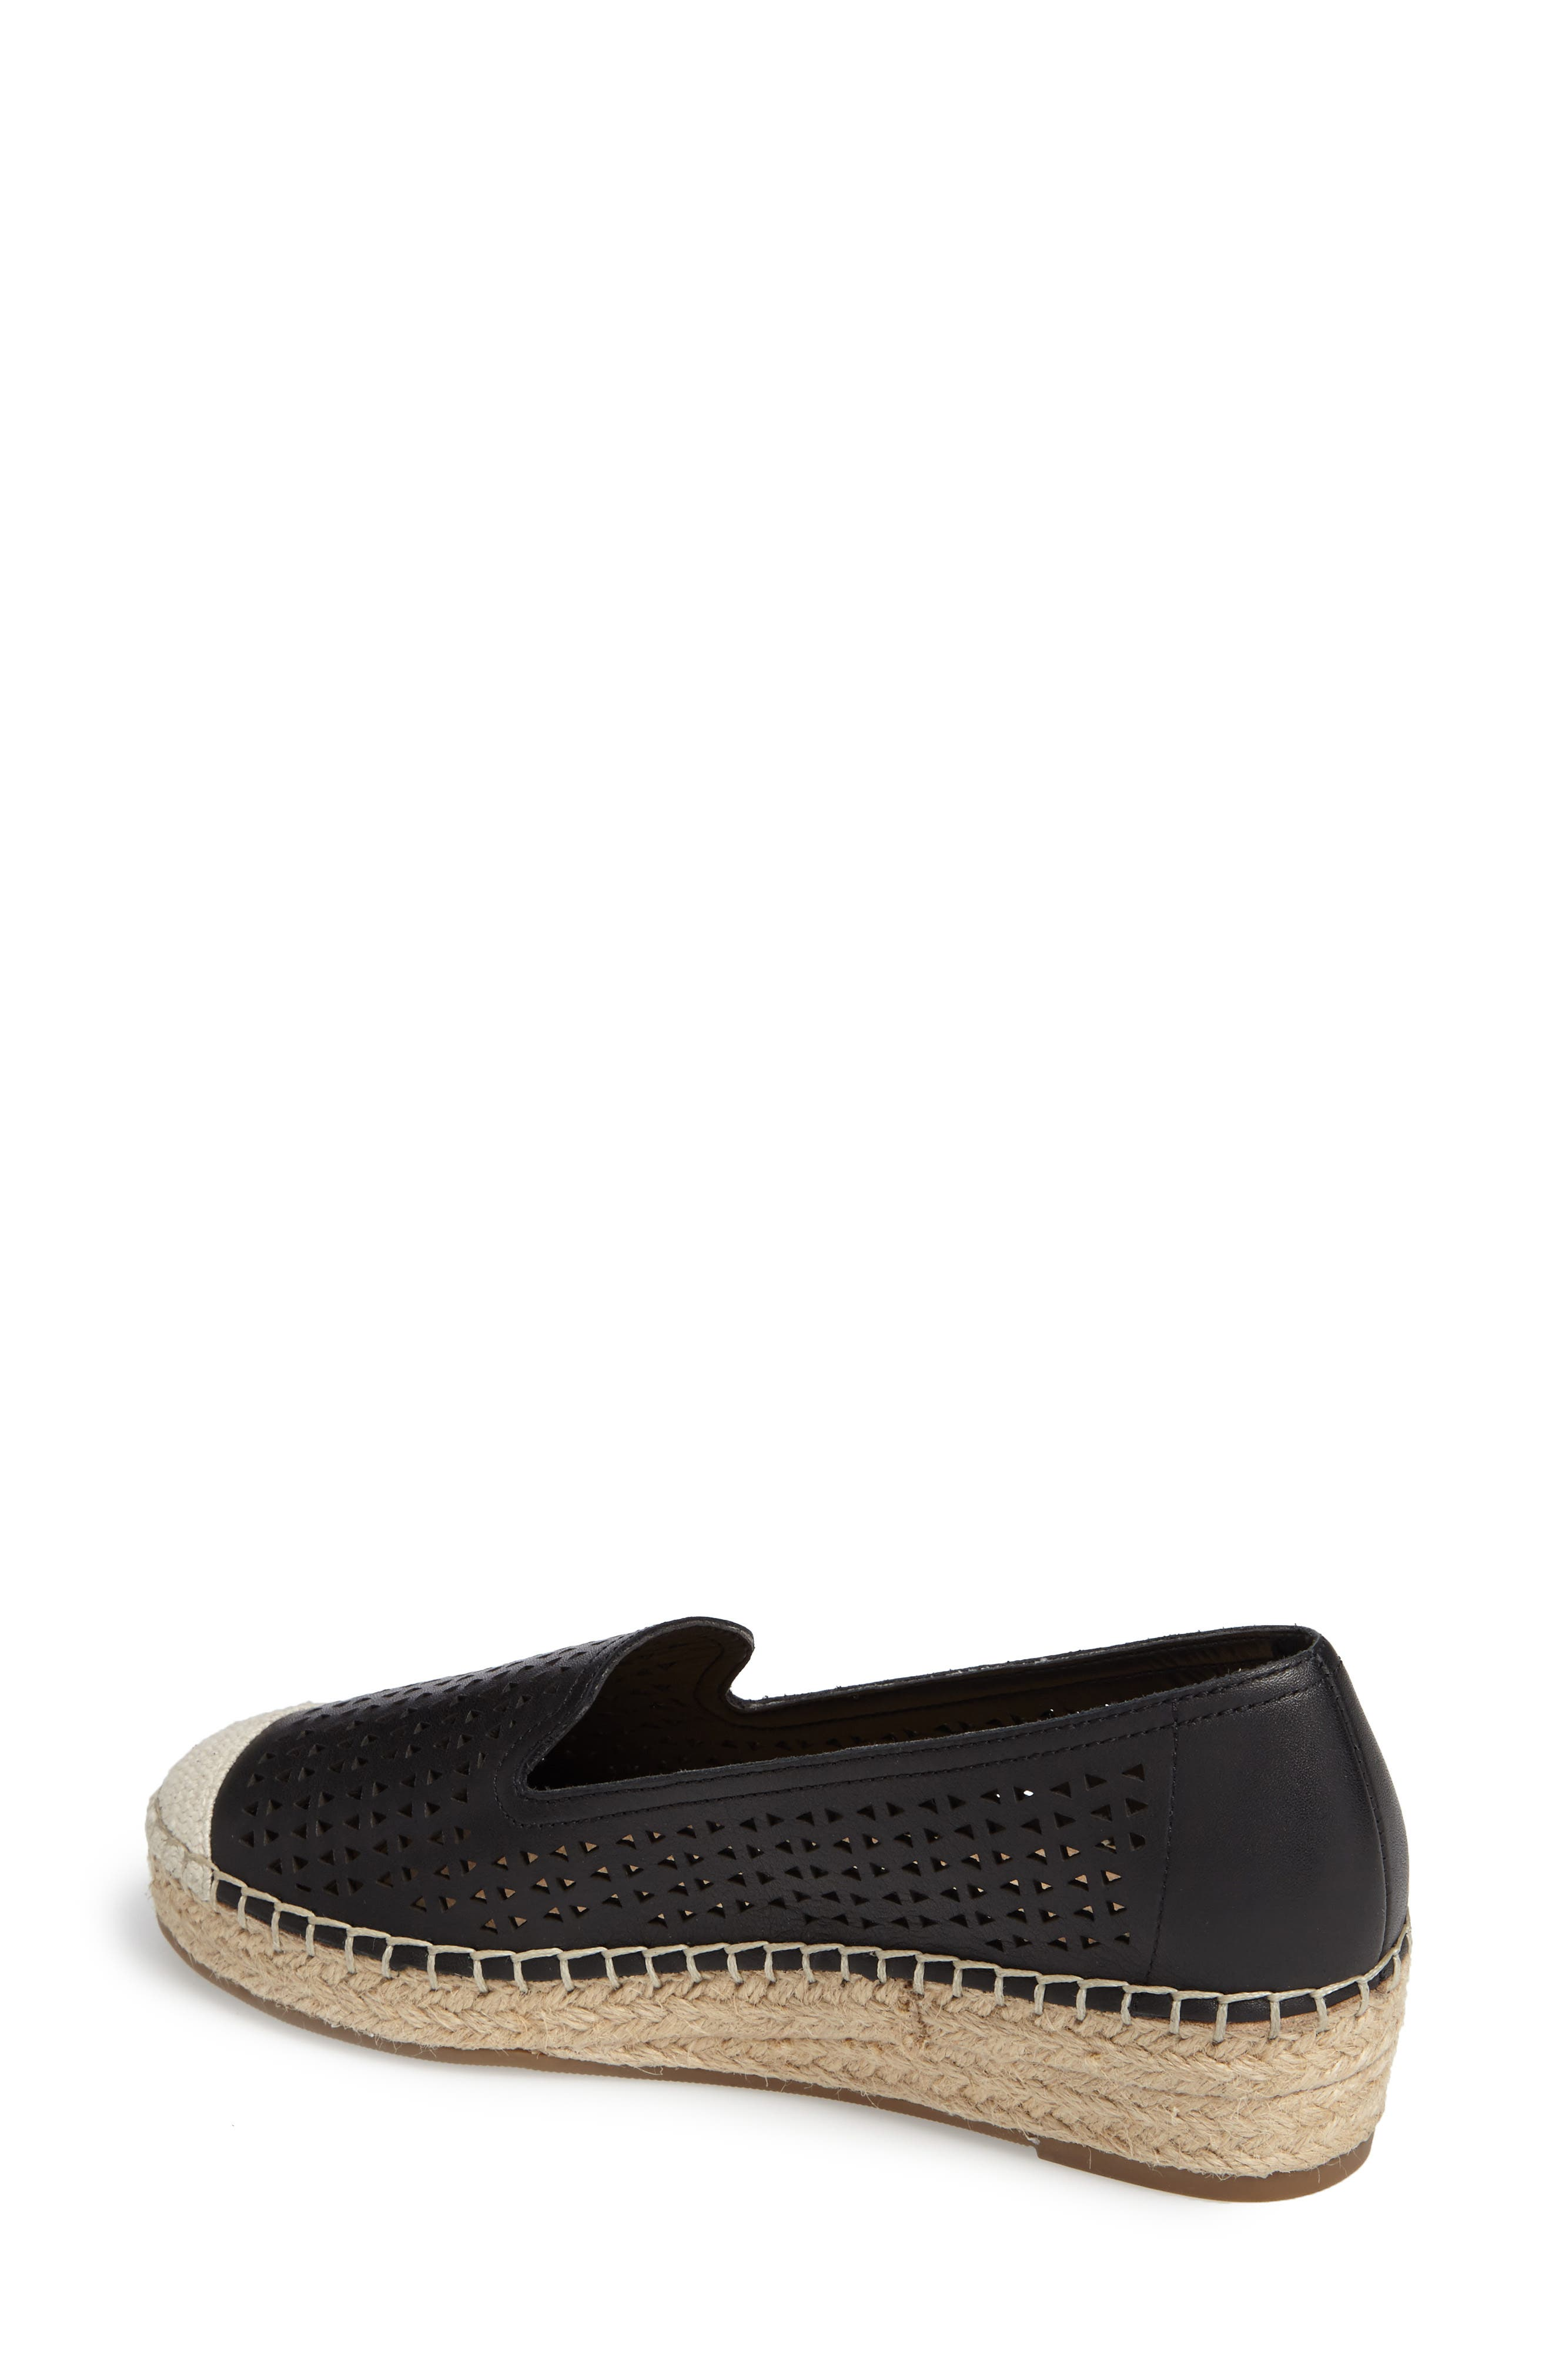 Channing Cutout Espadrille Loafer,                             Alternate thumbnail 2, color,                             BLACK LEATHER